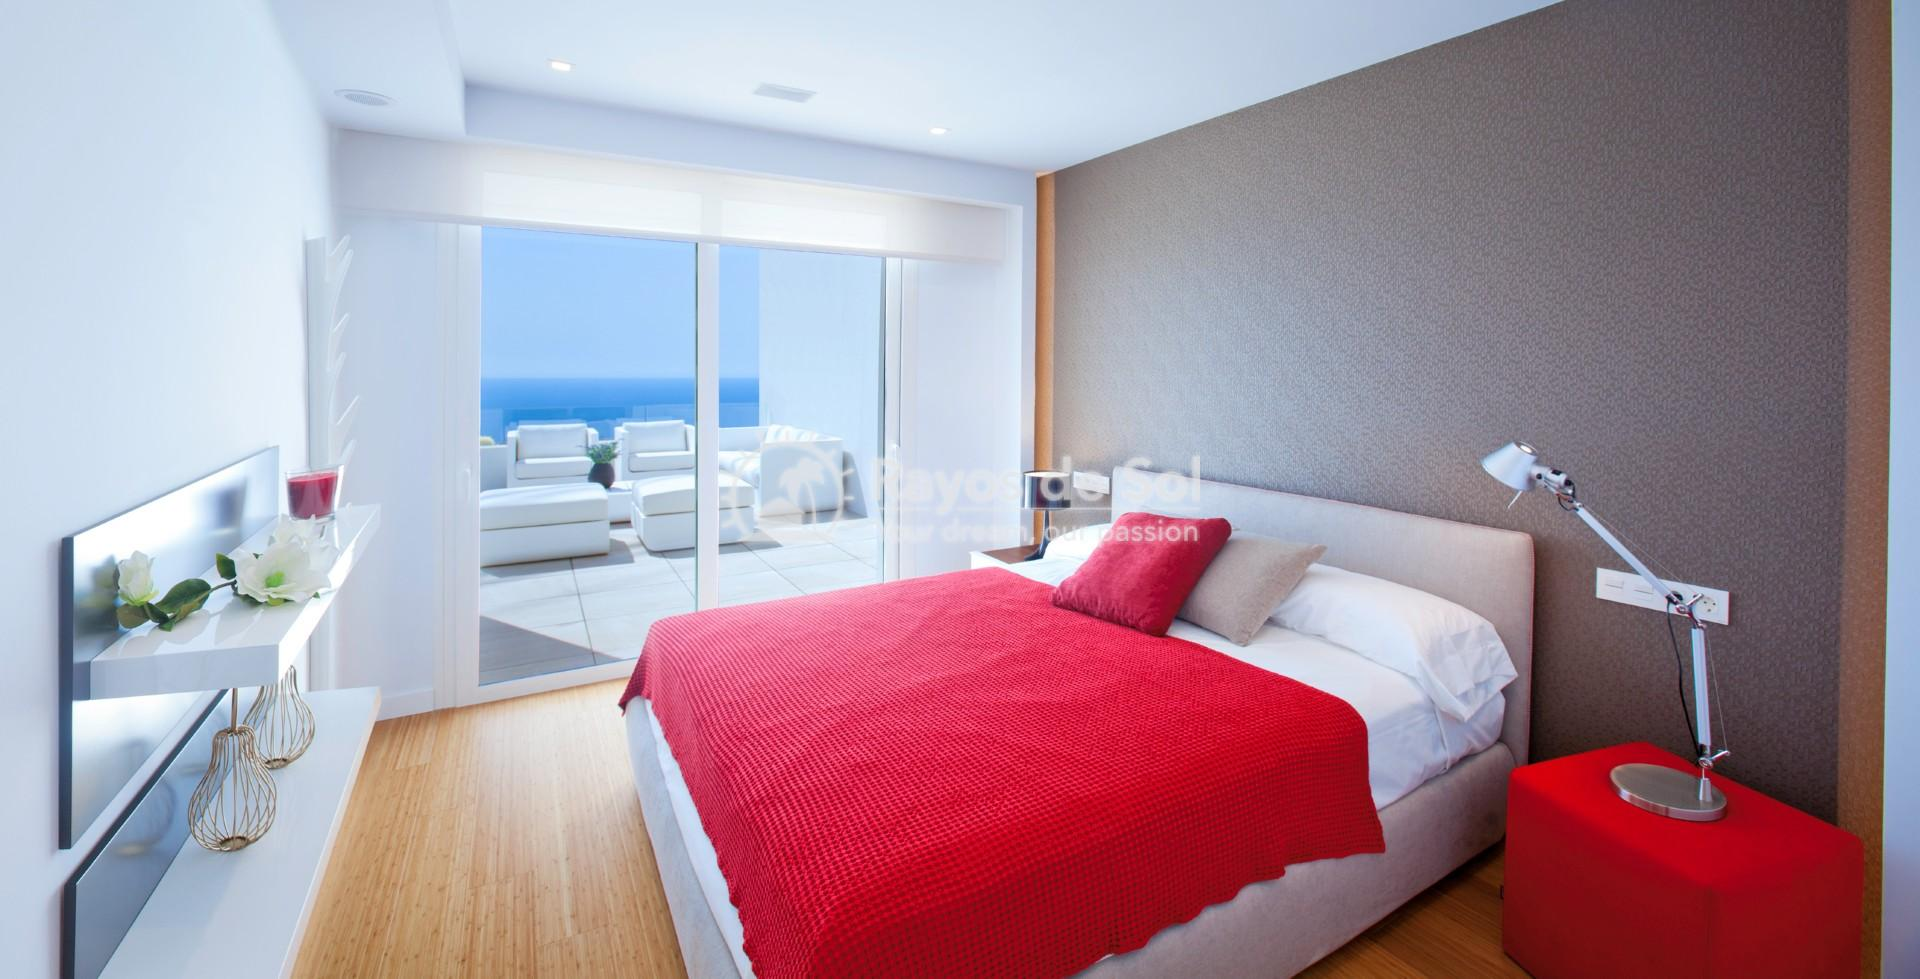 Exclusive apartment in Cumbre del Sol, Benitachell, Costa Blanca (BEVABI2-2) - 9